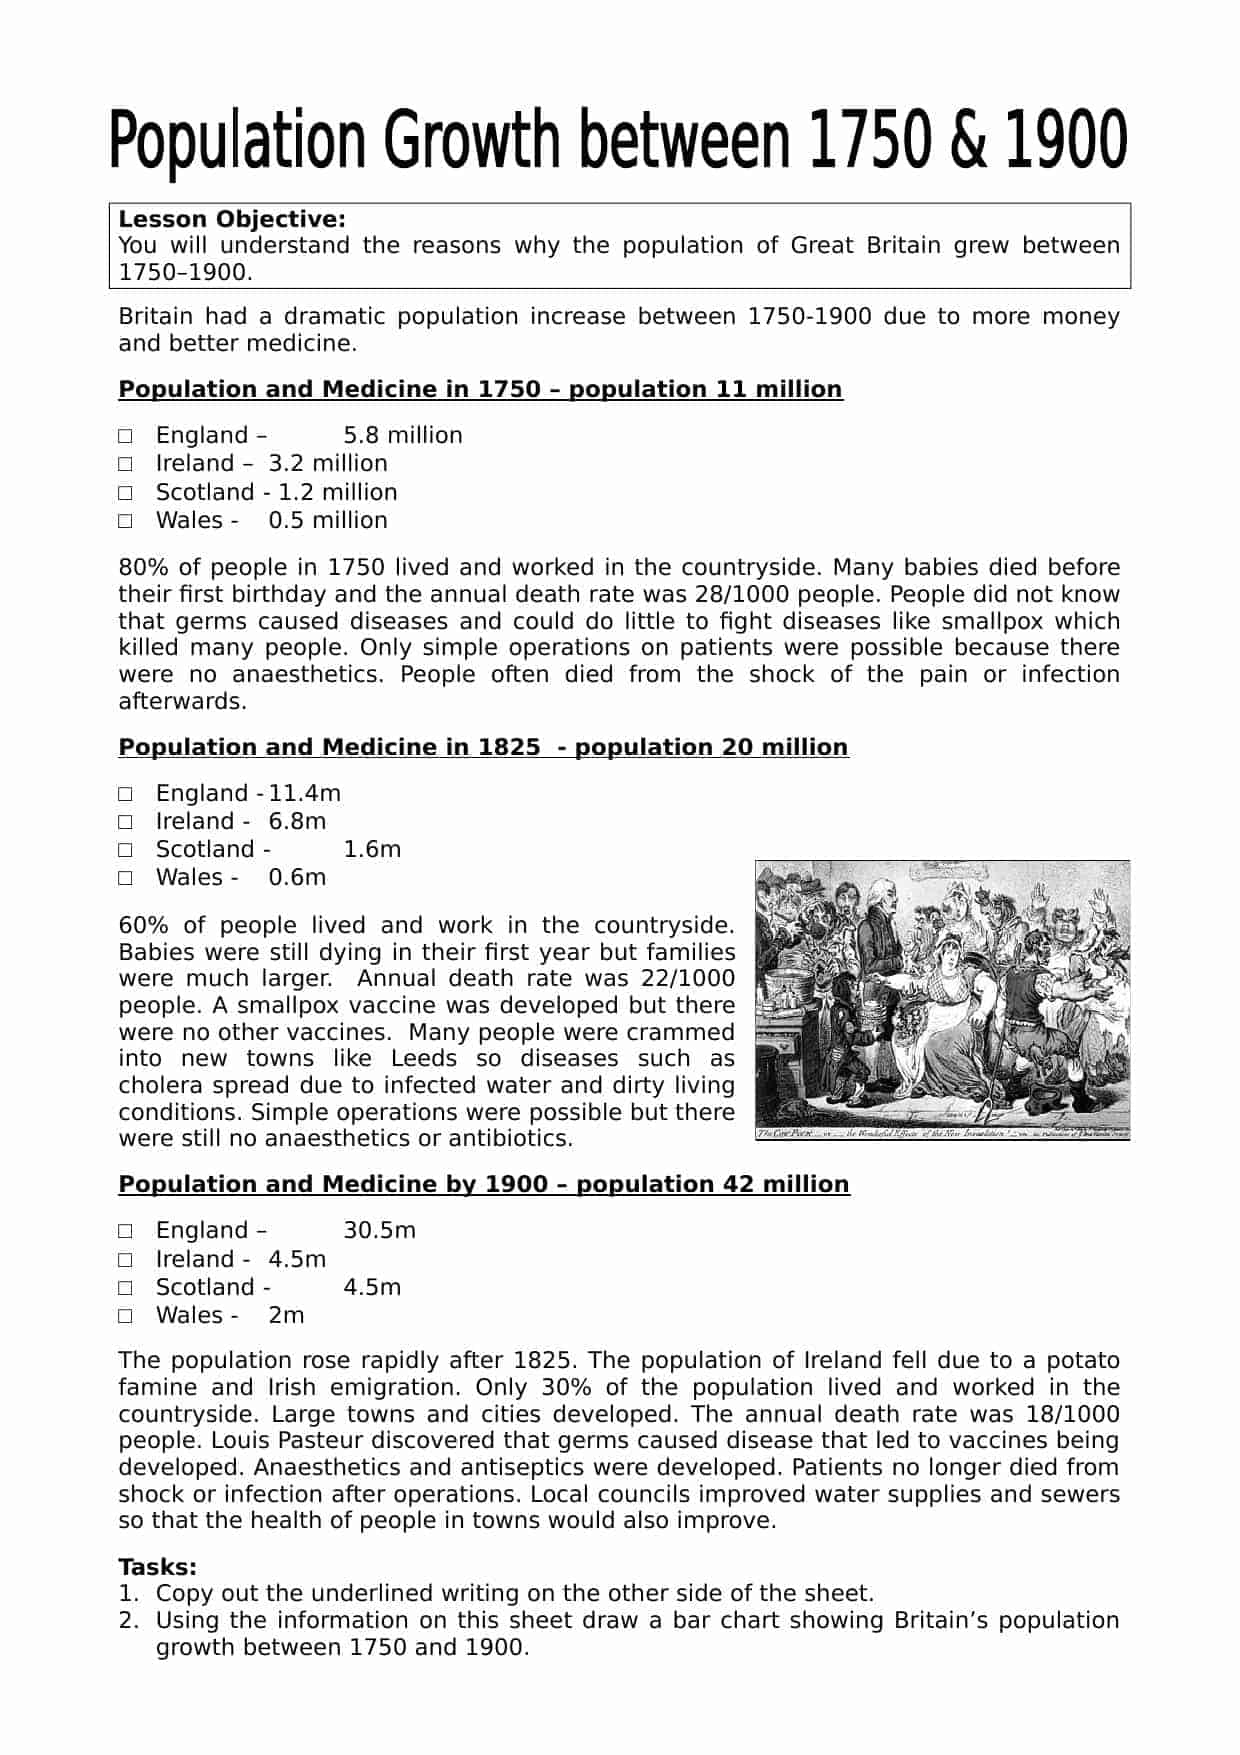 Industrial Revolution Population Growth Lesson Plan